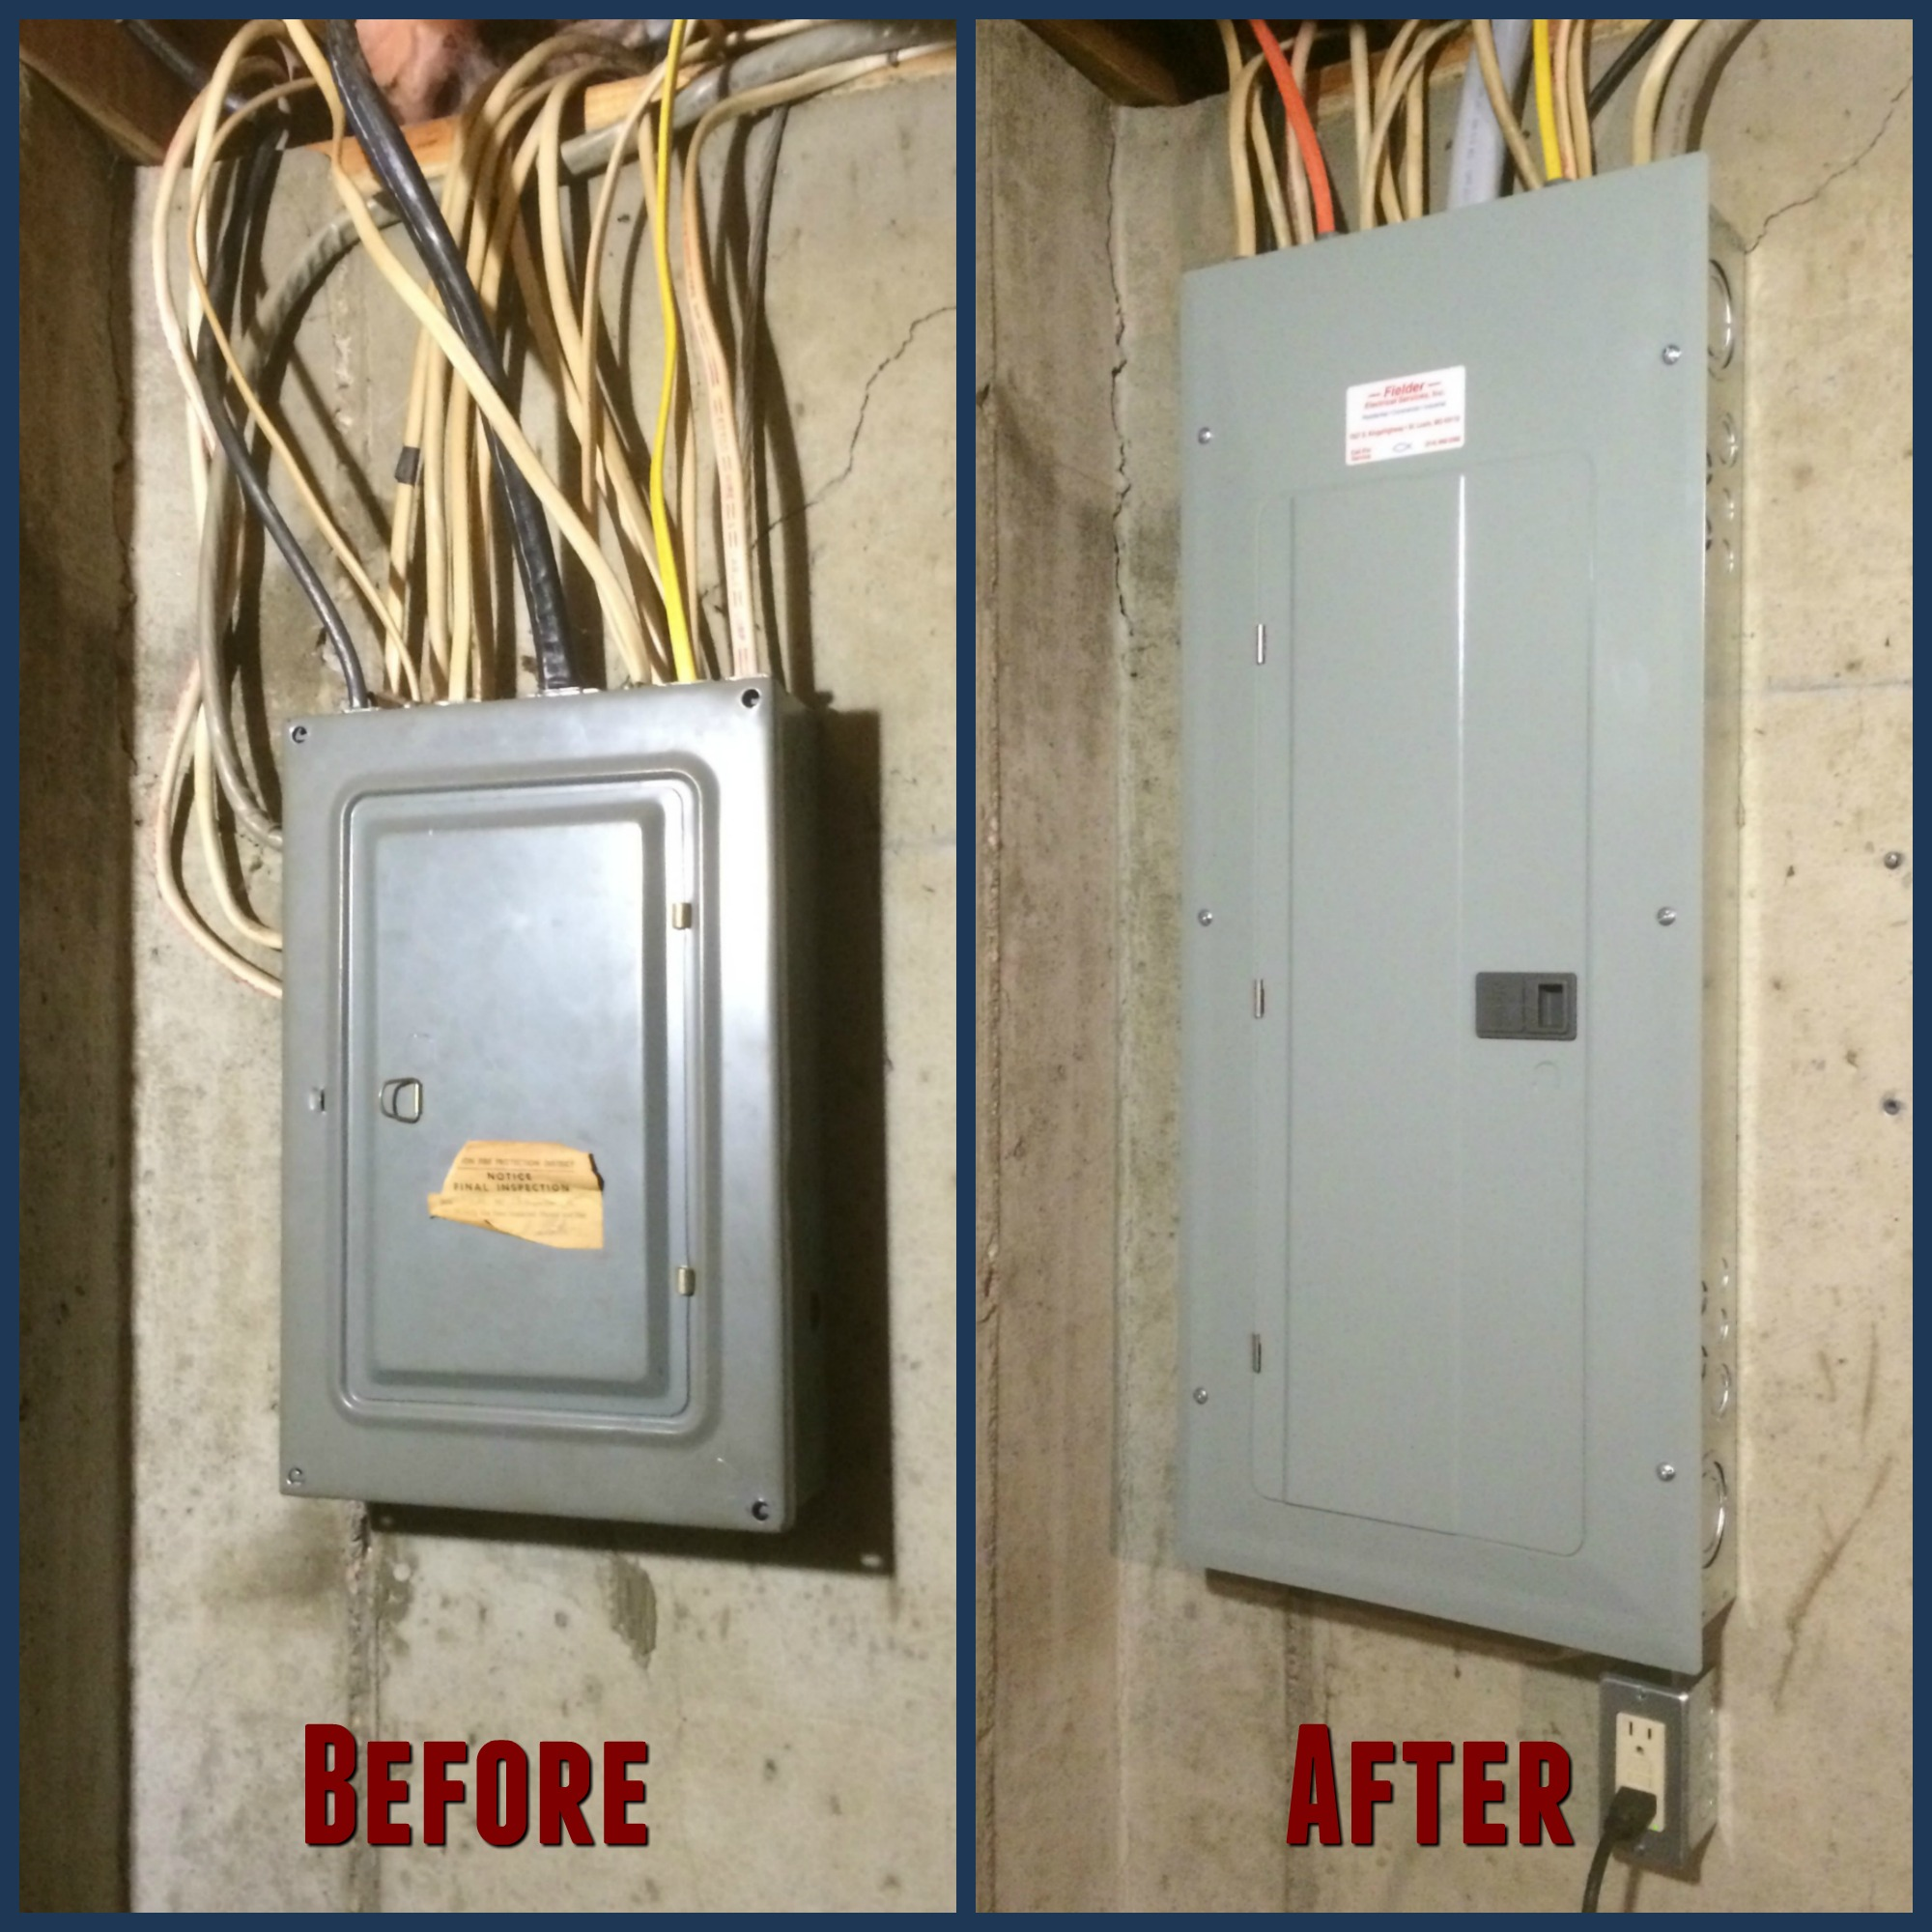 100 to 200 amp electric panel upgrade electrical panels fielder electrical services 200 amp fuse box at crackthecode.co